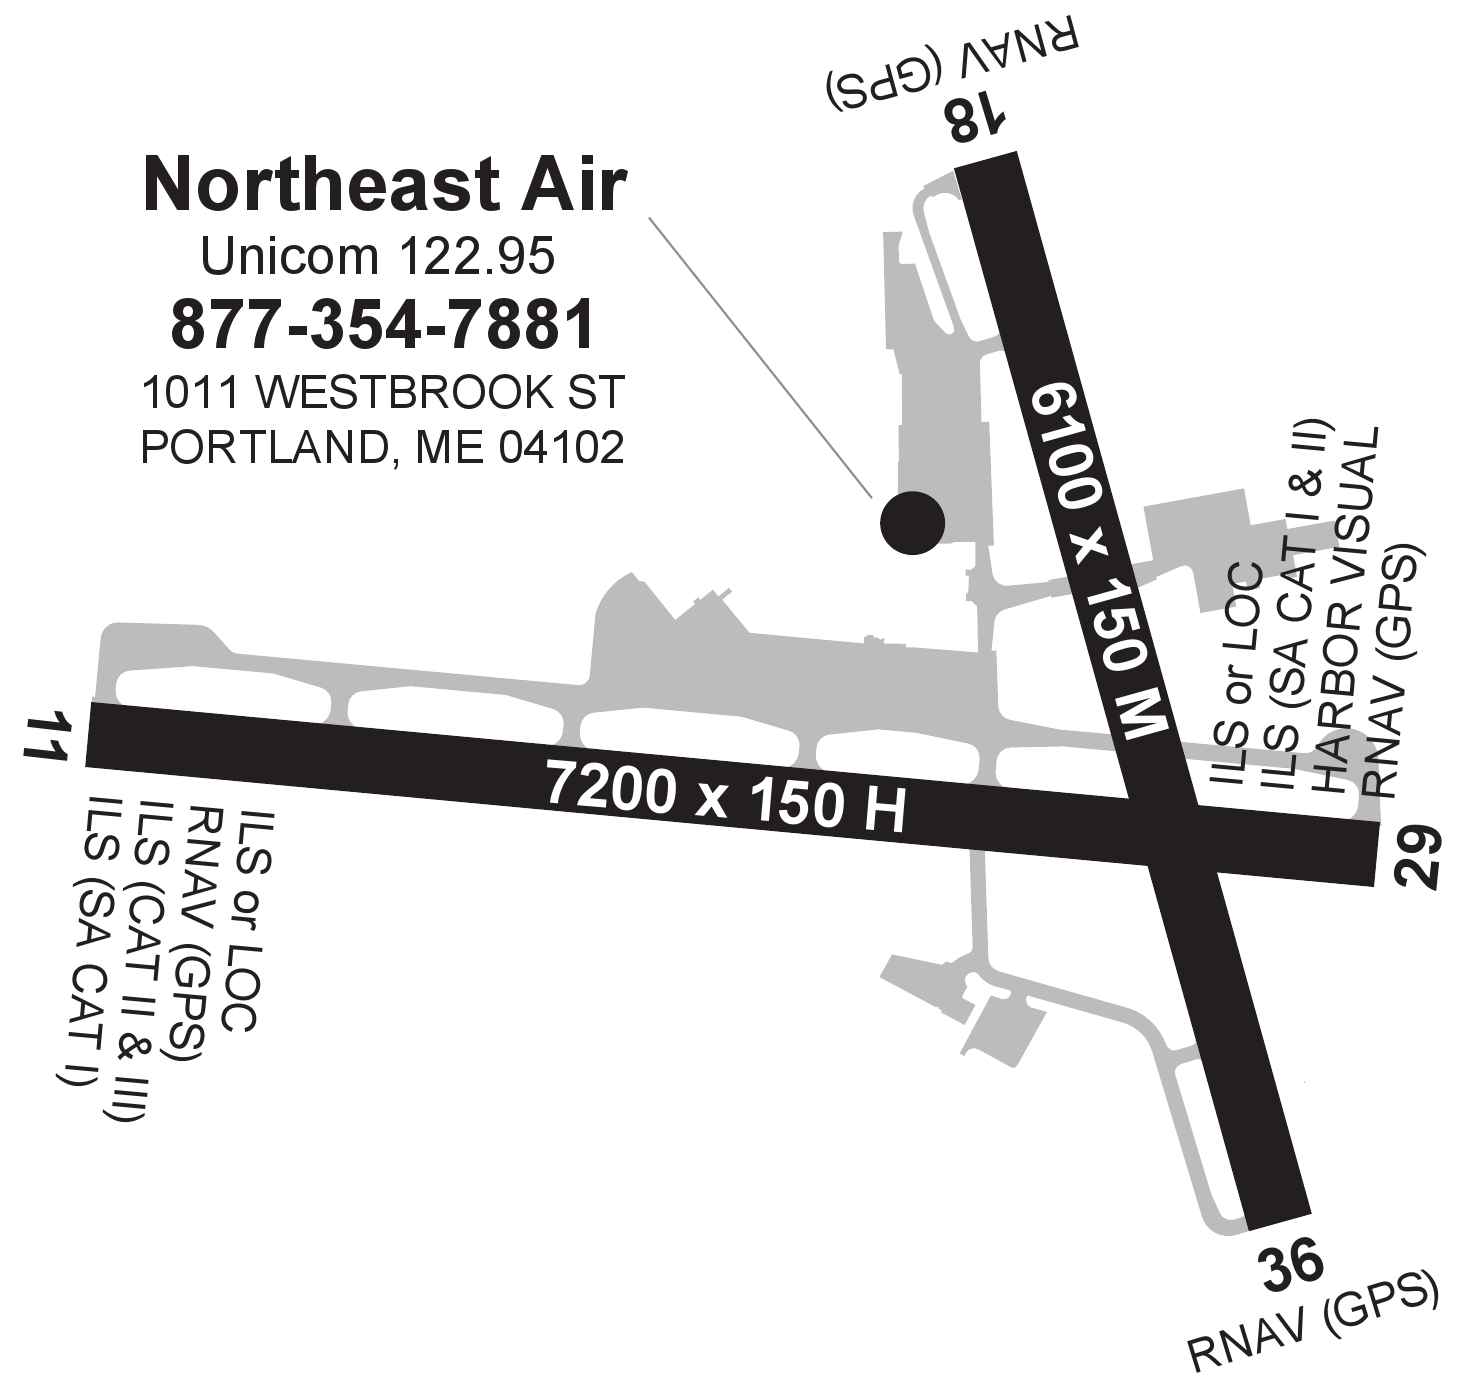 Northeast Air